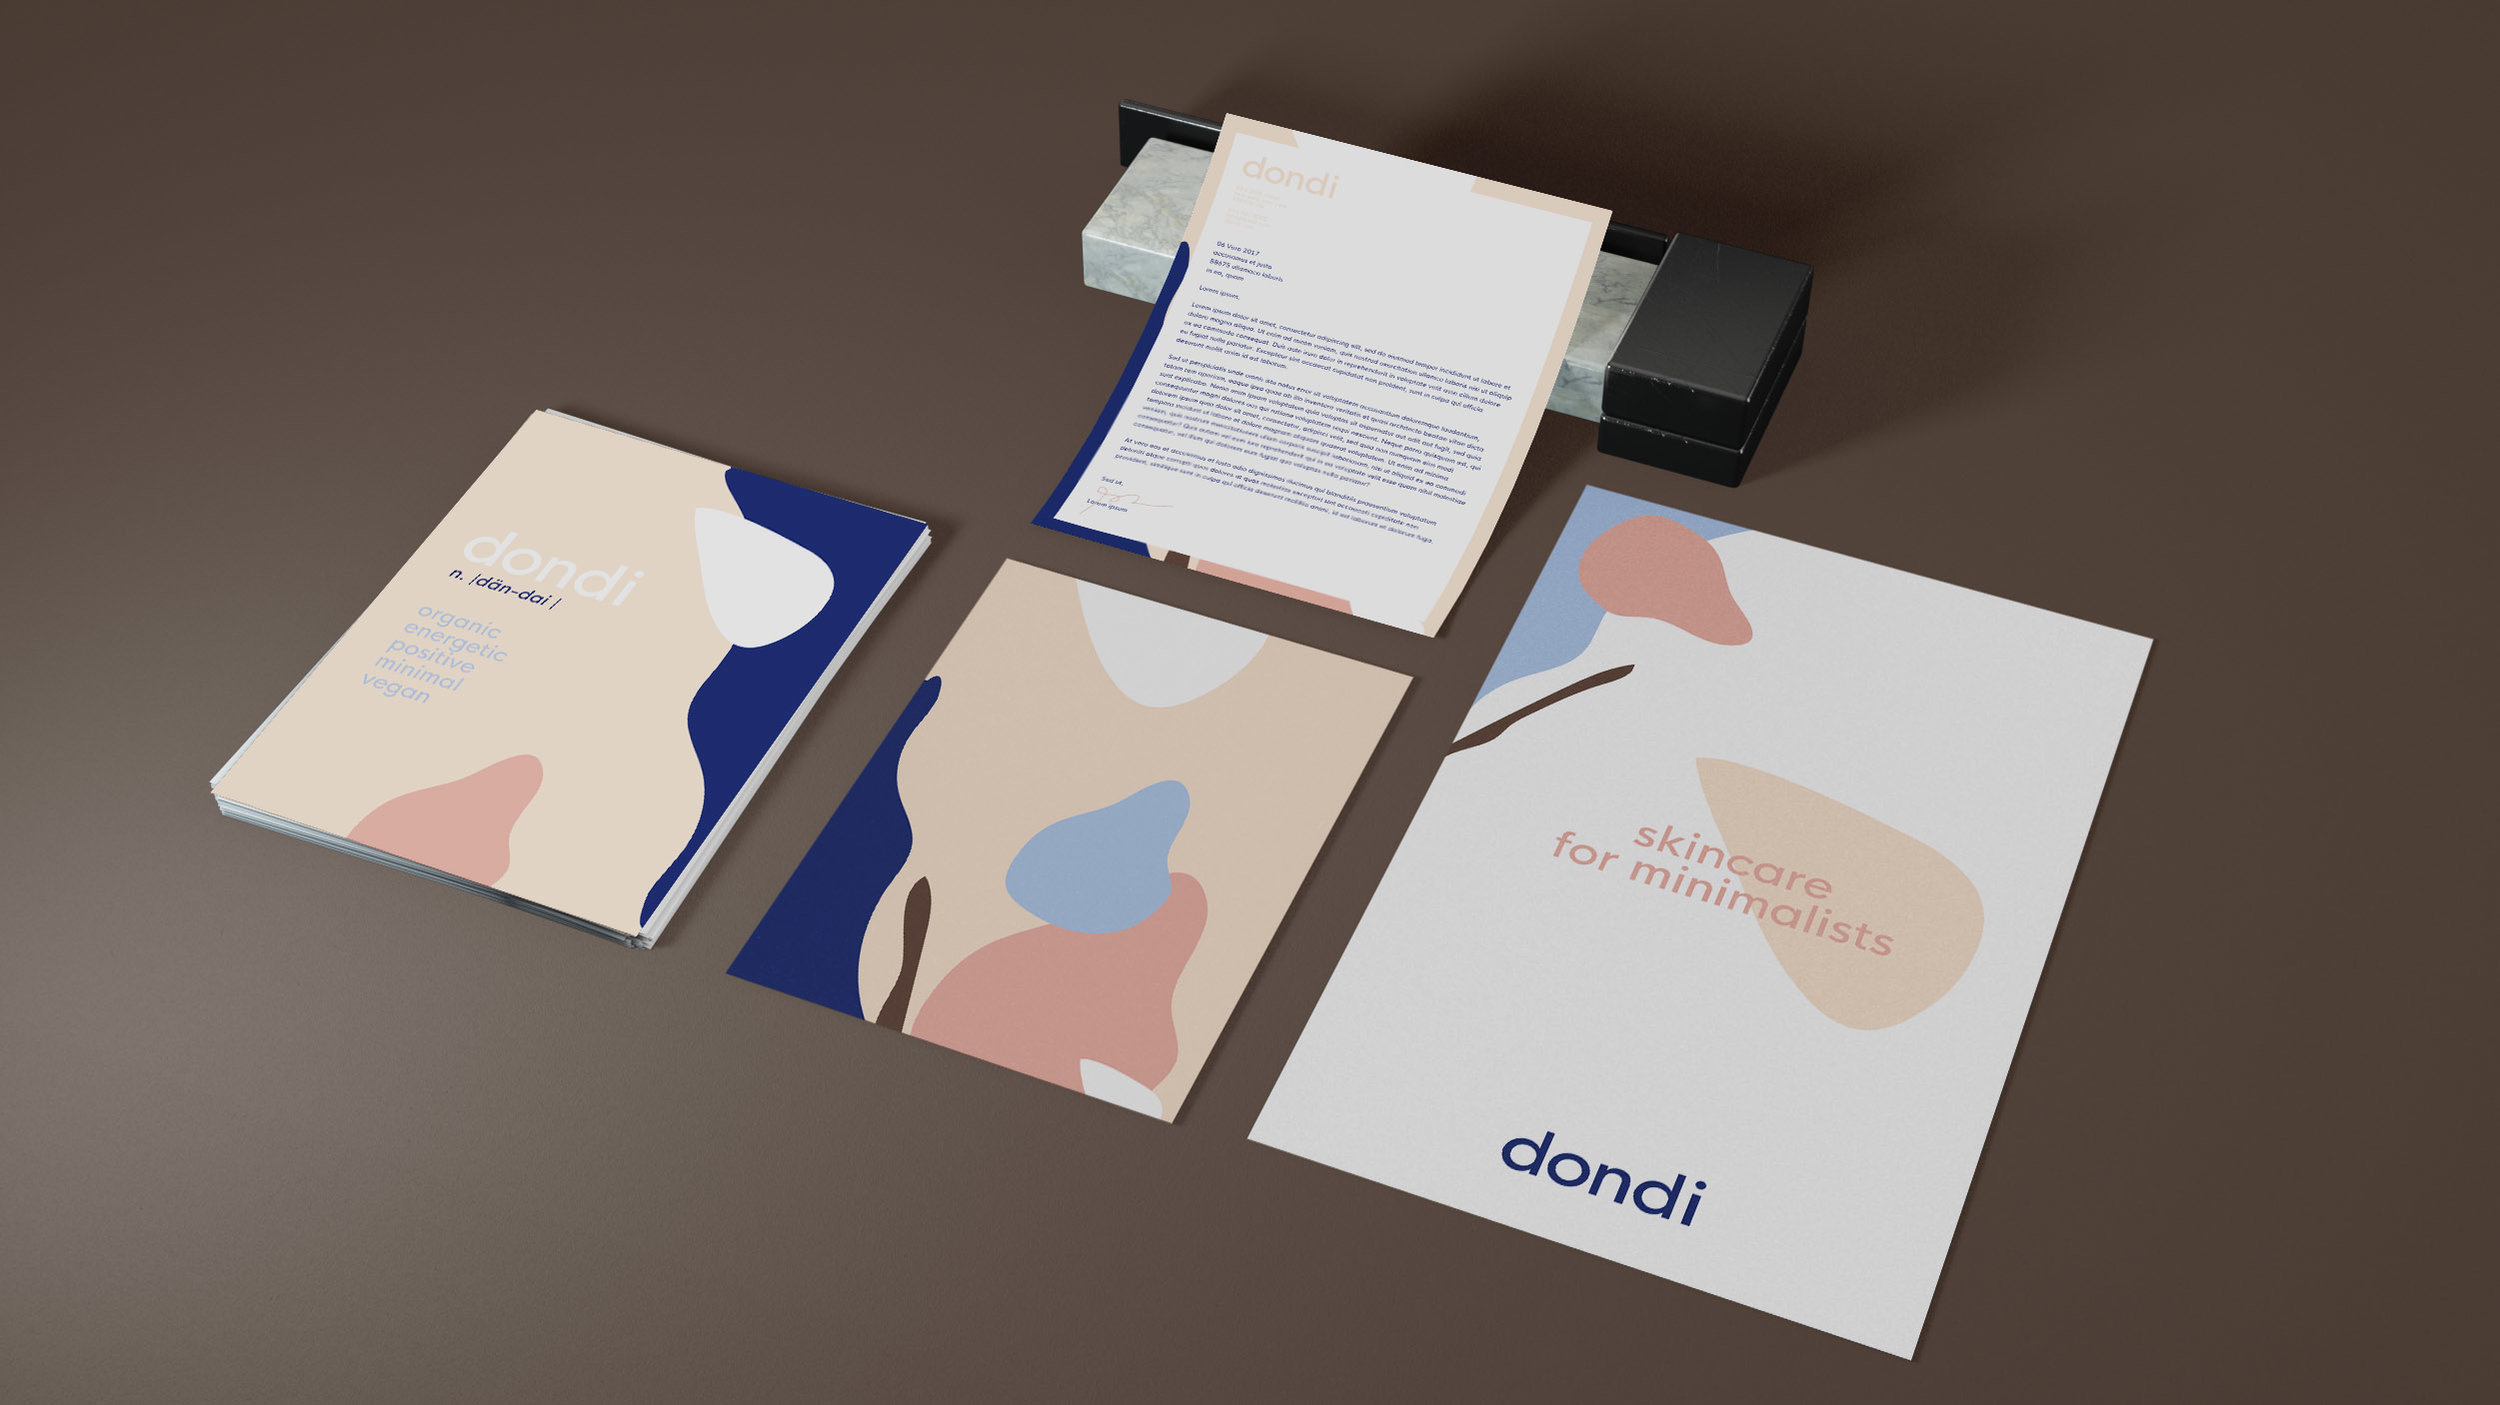 Dondi_Stationary_1.jpg